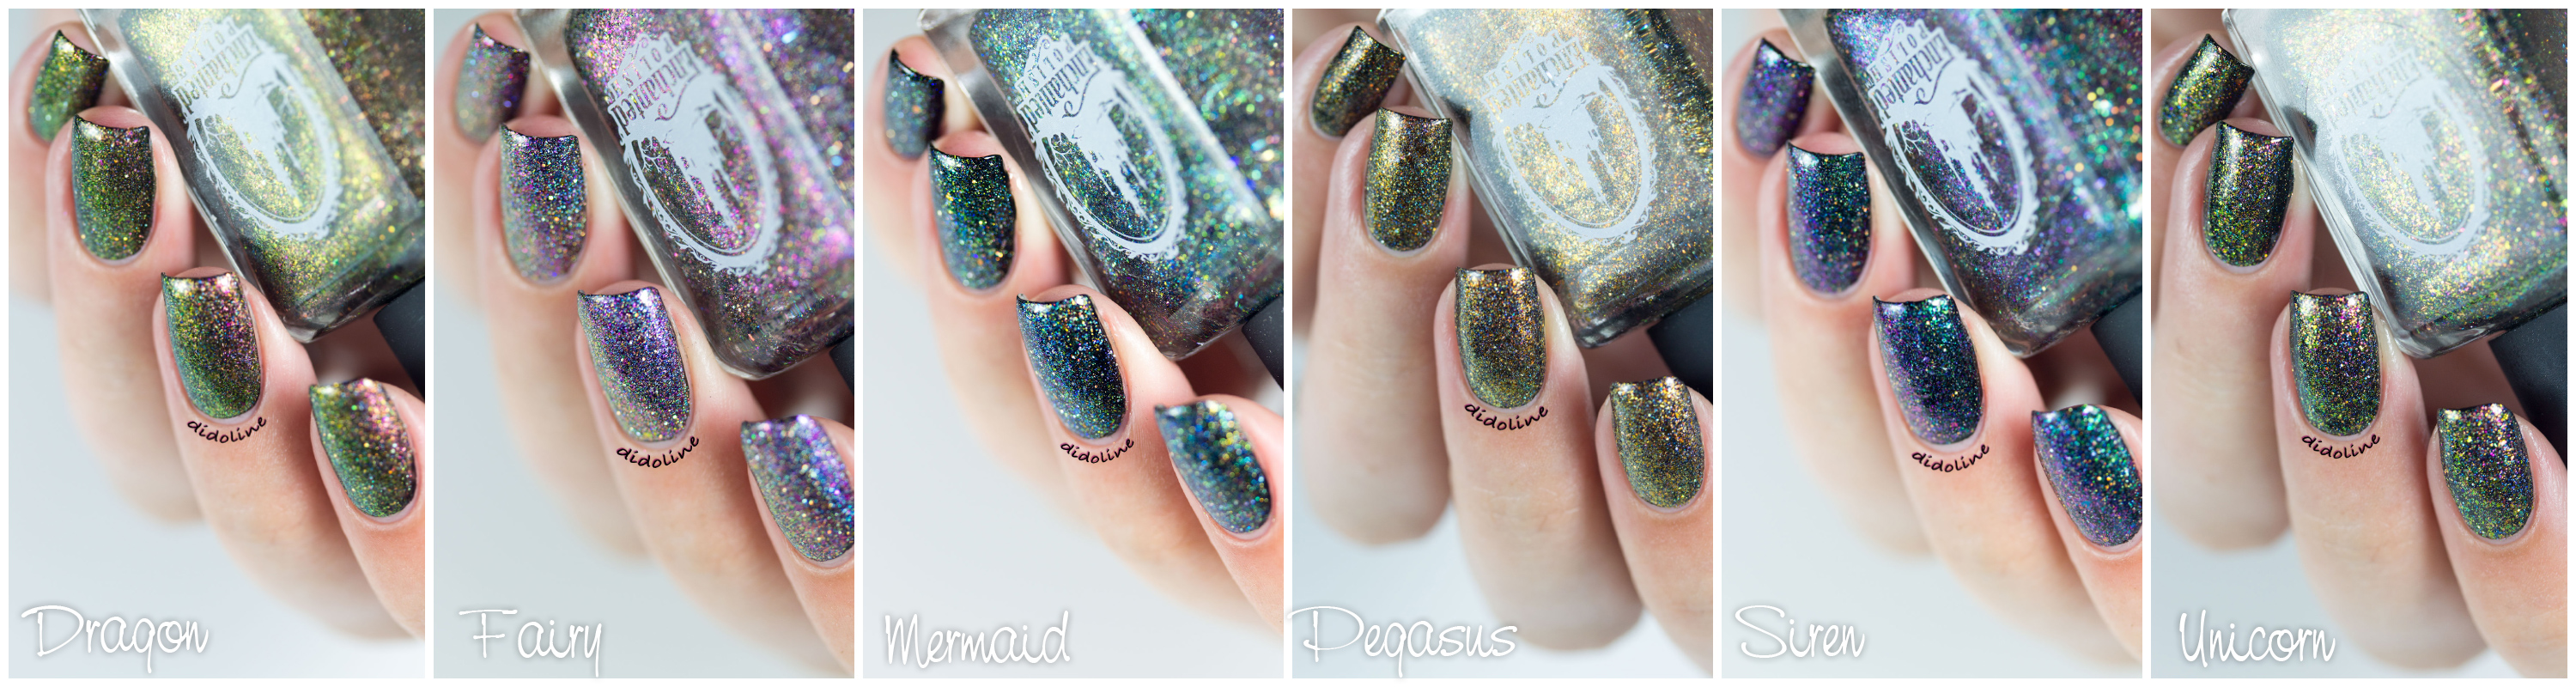 Enchanted Polish - Fantasy Collection